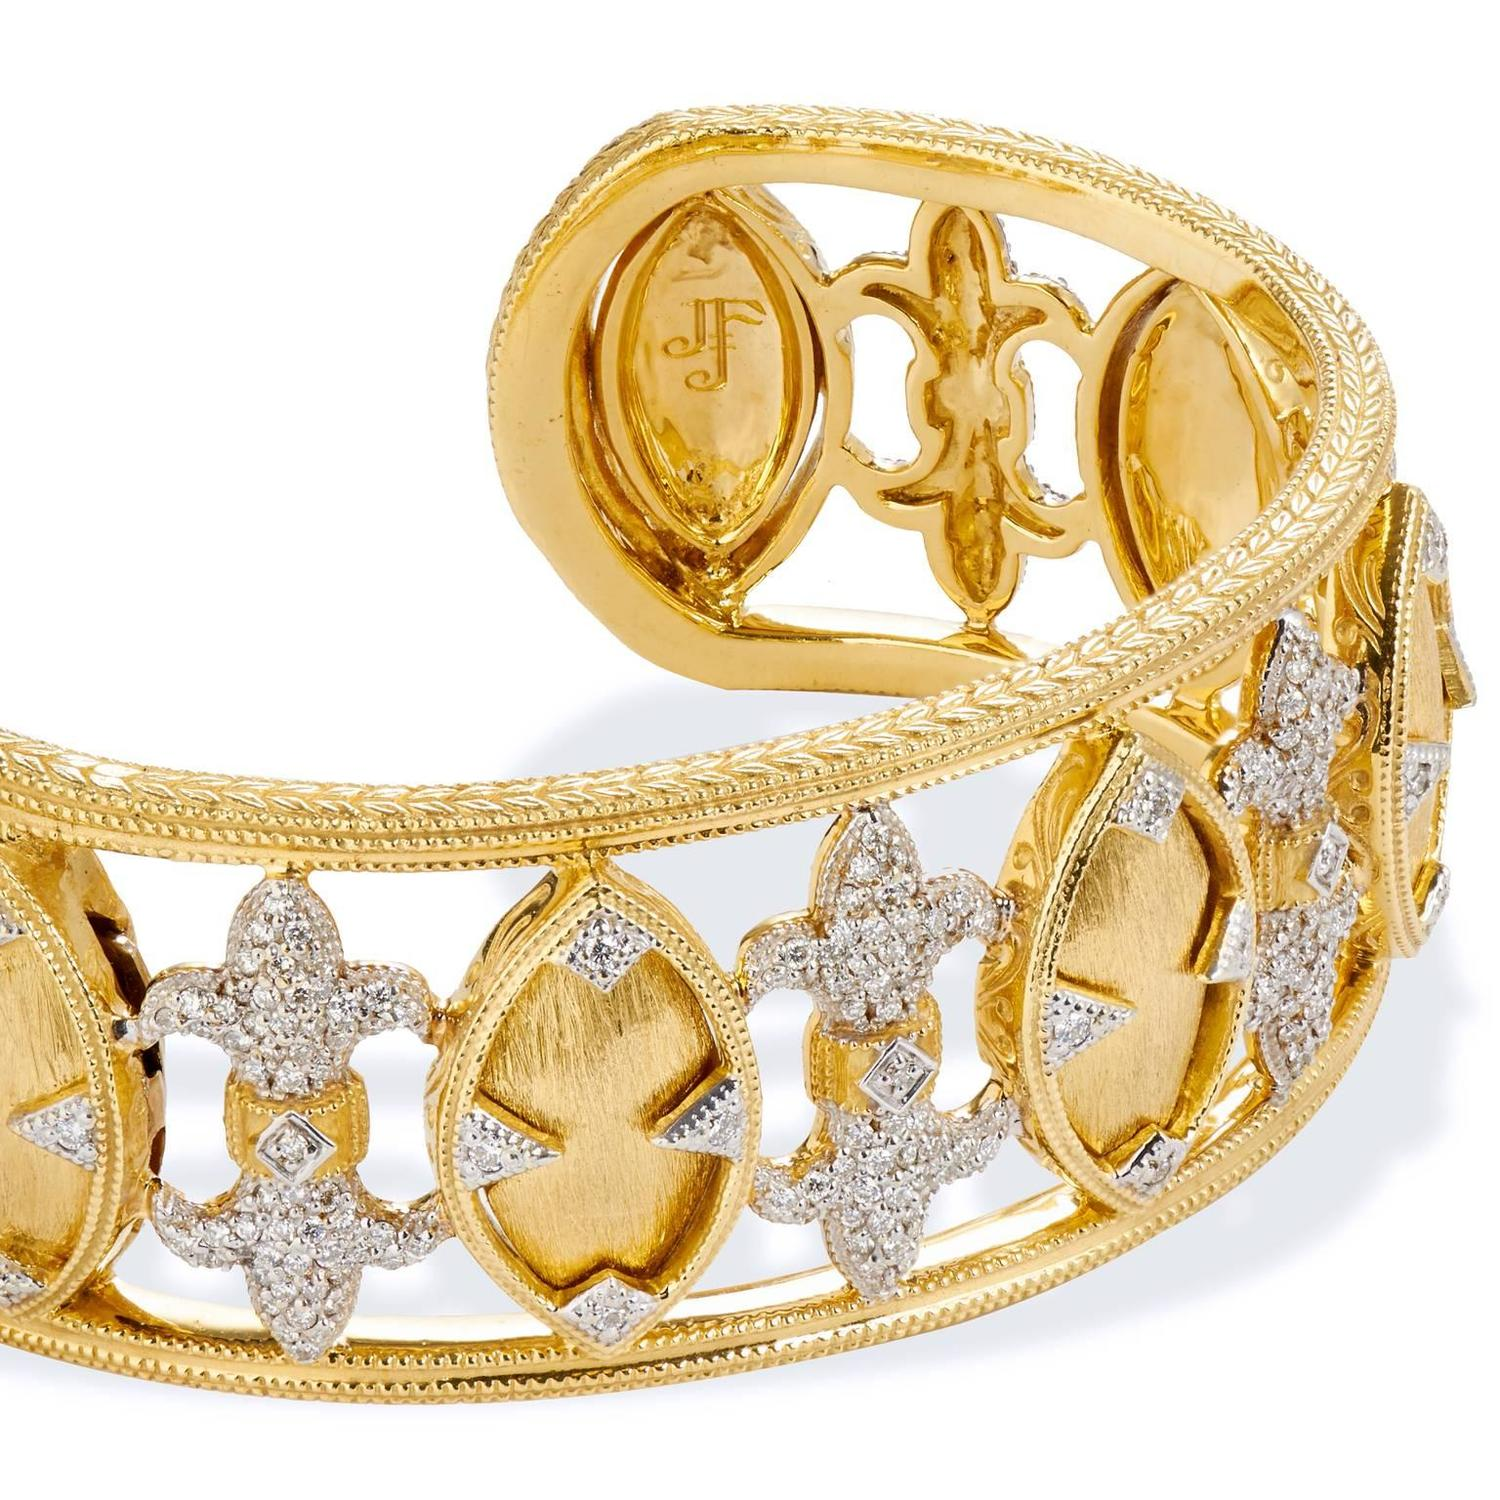 Jude Frances Marquis Fleur Diamond Gold Cuff Bracelet For Sale at 1stdibs